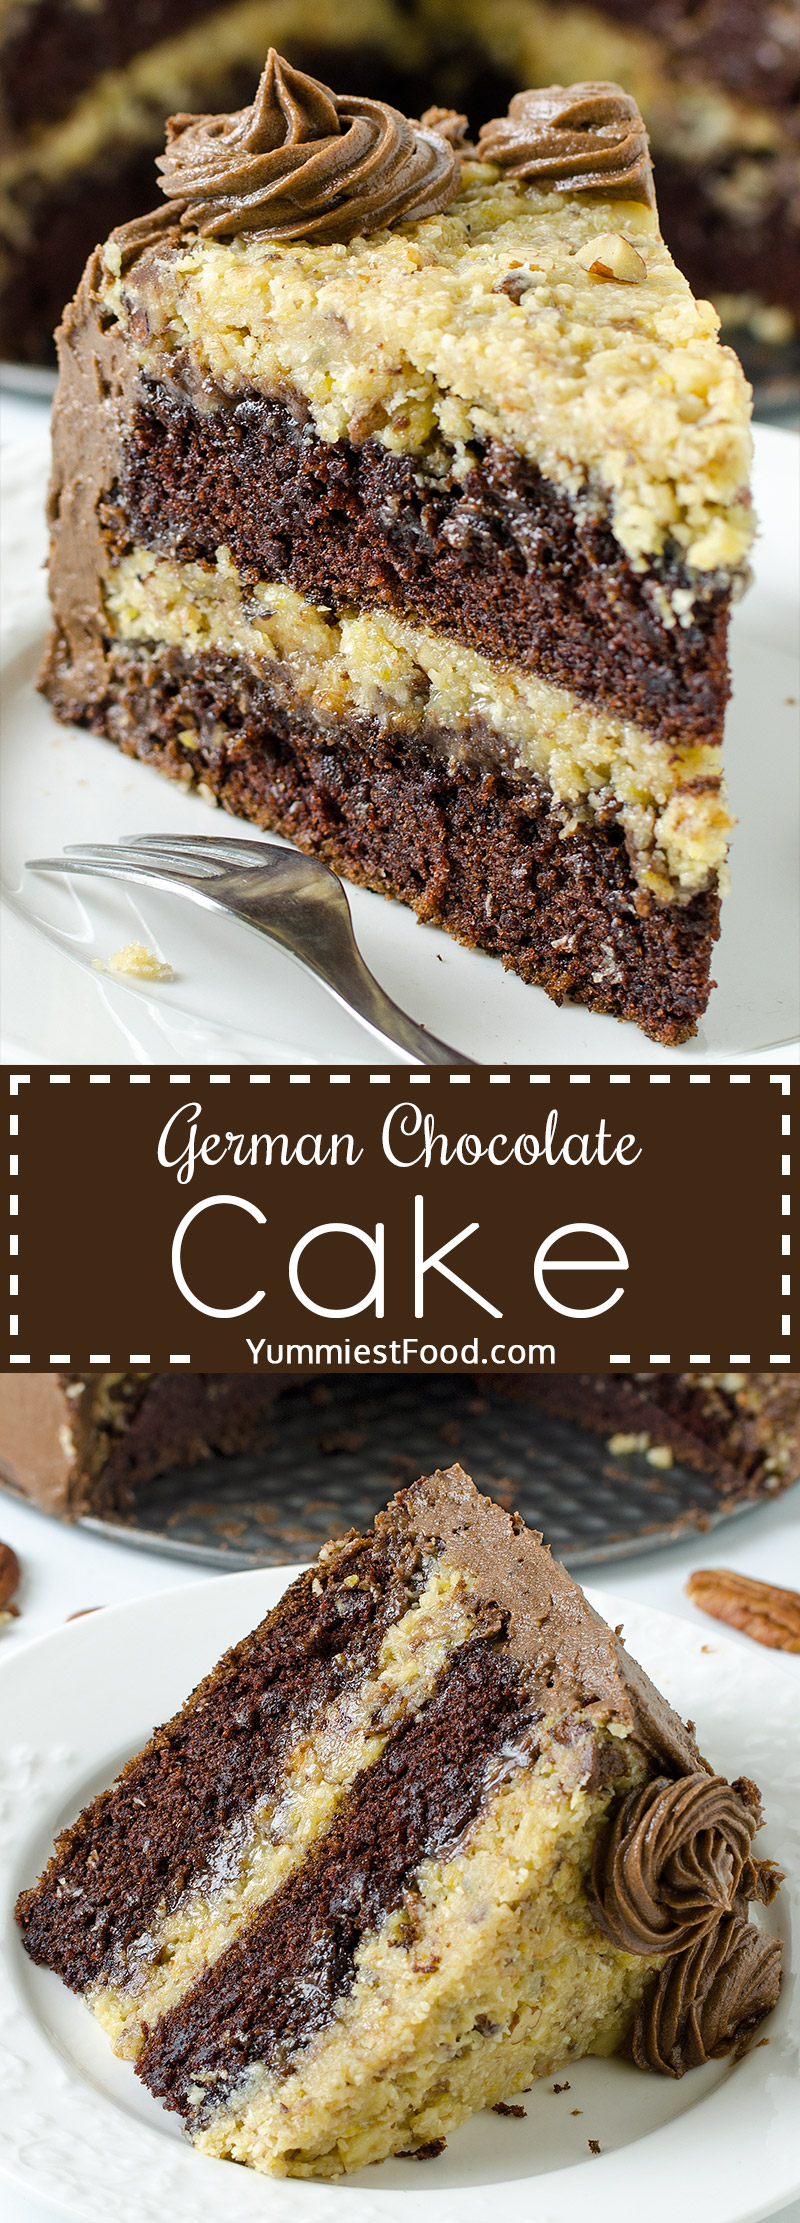 GERMAN CHOCOLATE CAKE - The Best Homemade German Chocolate Cake is wonderfully delicious combination of chocolate cake, coconut and pecans